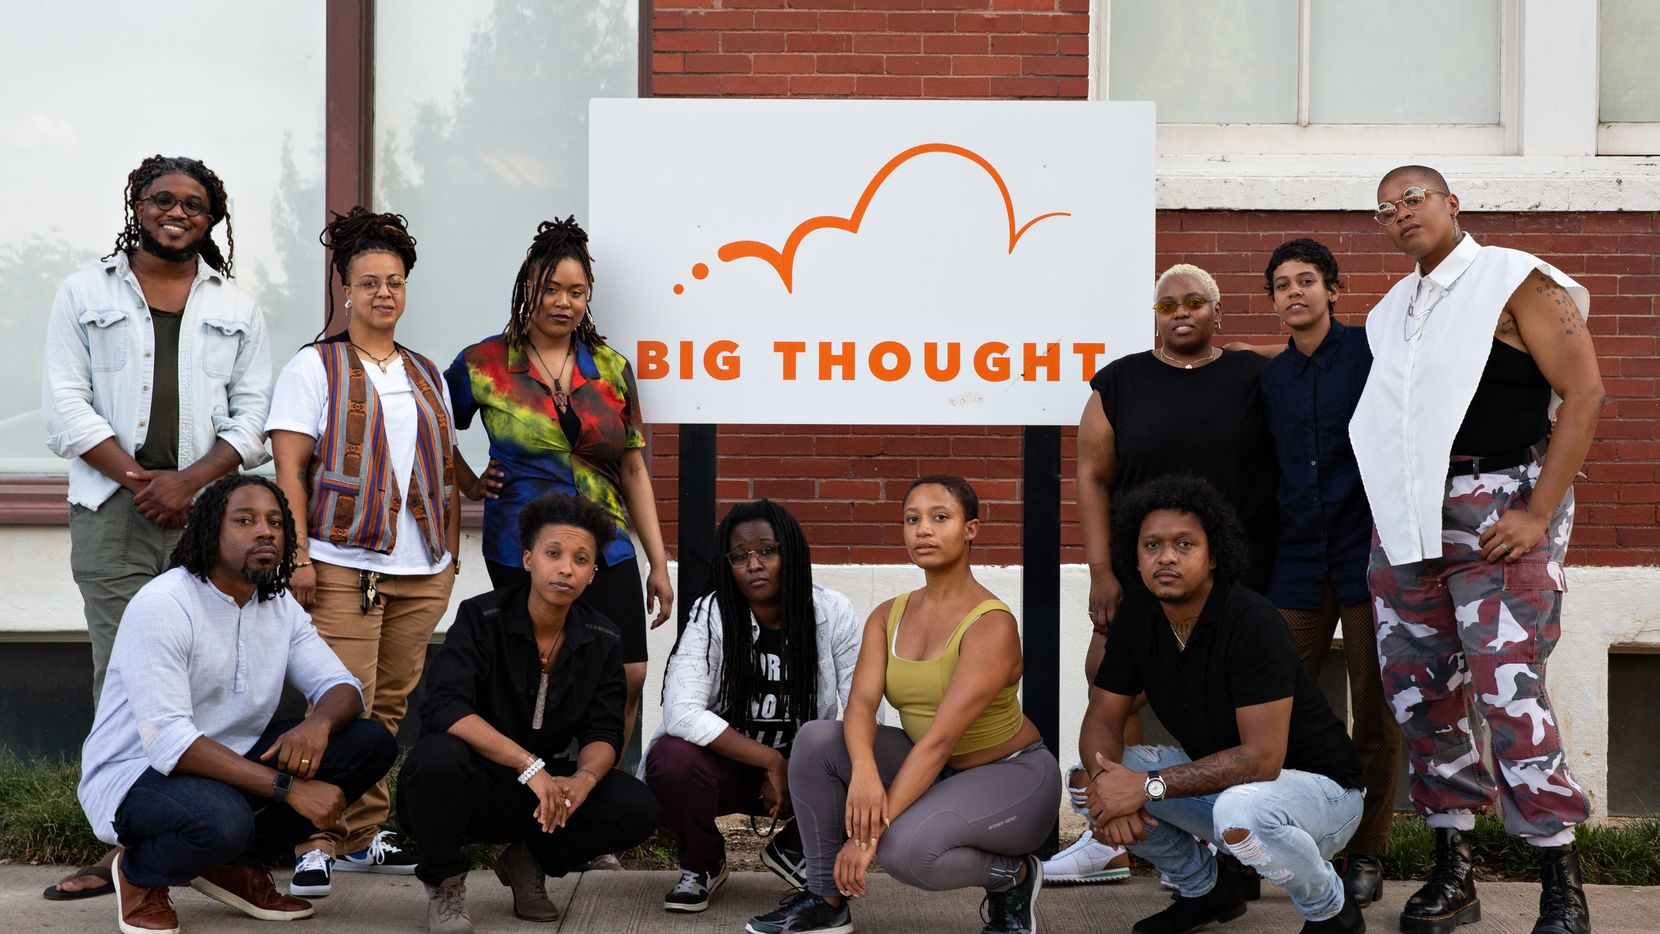 From left to right, top to bottom - Tro'Juan Henderson, T. Odis, Jer'Lisa Devezin, Gabby Elvessie, CRUSH Davis, Princess McDowell, McKinley Willis, Ciara Elle Bryant, Gabriel Sheffield, Syd Loving and Niecee X are the curriculum writers and teaching artists that make up the Youth 2 Power team. The free, six-week summer camp for teenagers will center around community leadership, political education and art as a tool for social change.